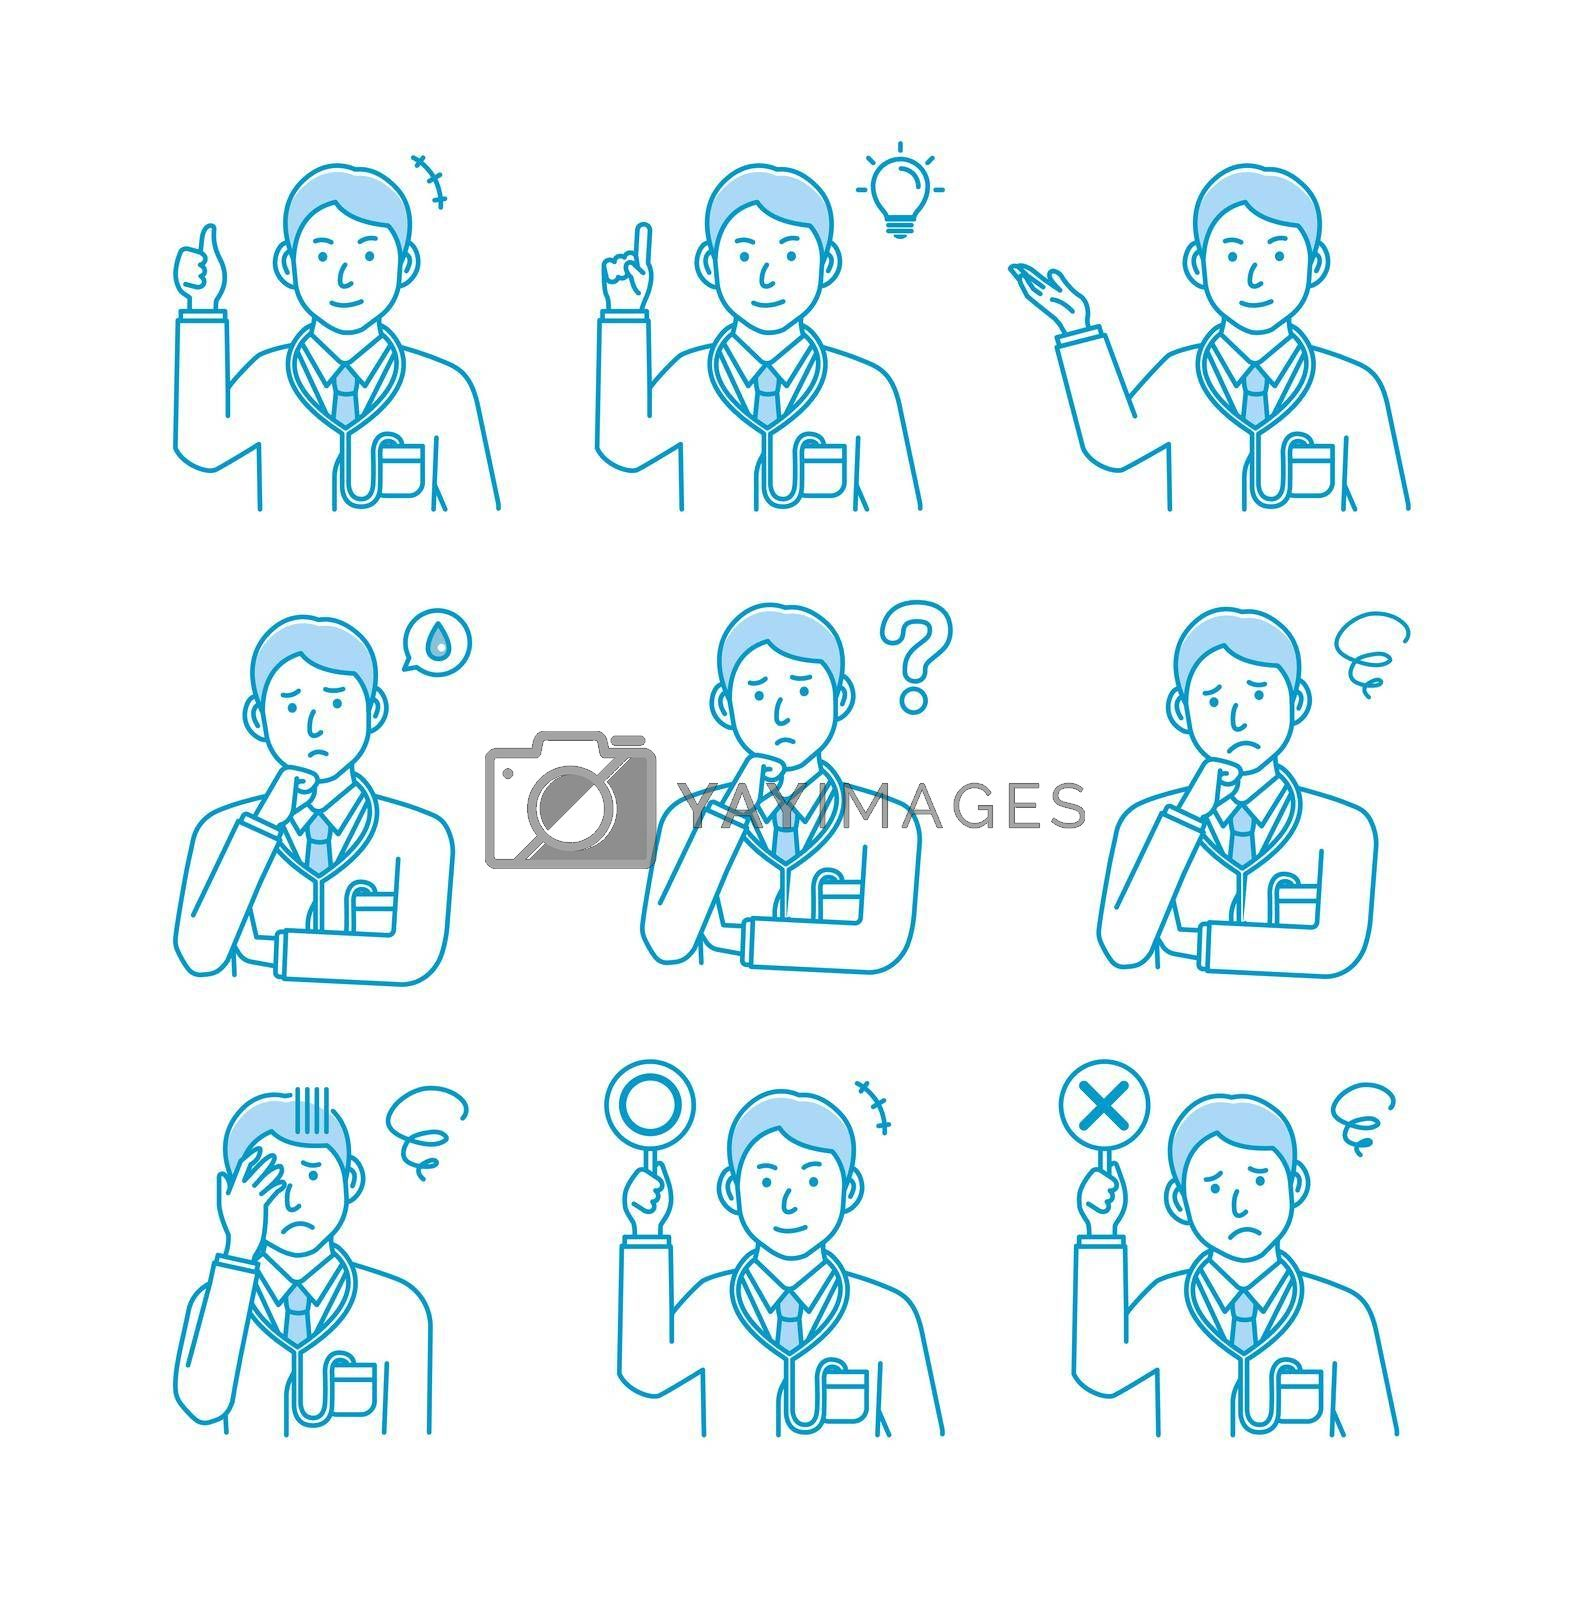 Royalty free image of Young male doctor gesture variation illustration set by barks